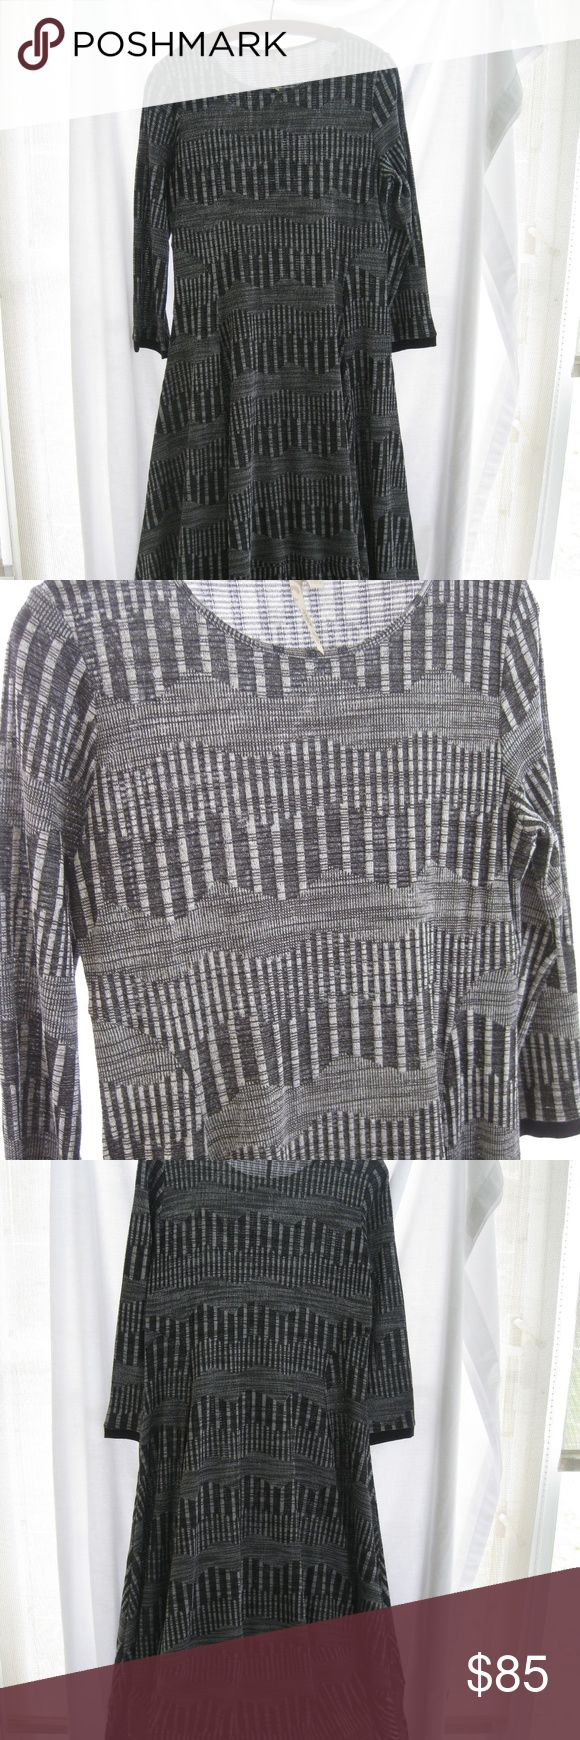 "Comfy U.S.A. funky lagenlook dress A fun bell shaped  knit all season dress. Size large, 36"" bust, 42"" from shoulder to hem. Silver gray black. Could be casual or very dressy. Perfect condition. A really versatile piece. Original price $178-$190 comfy USA Dresses Midi"